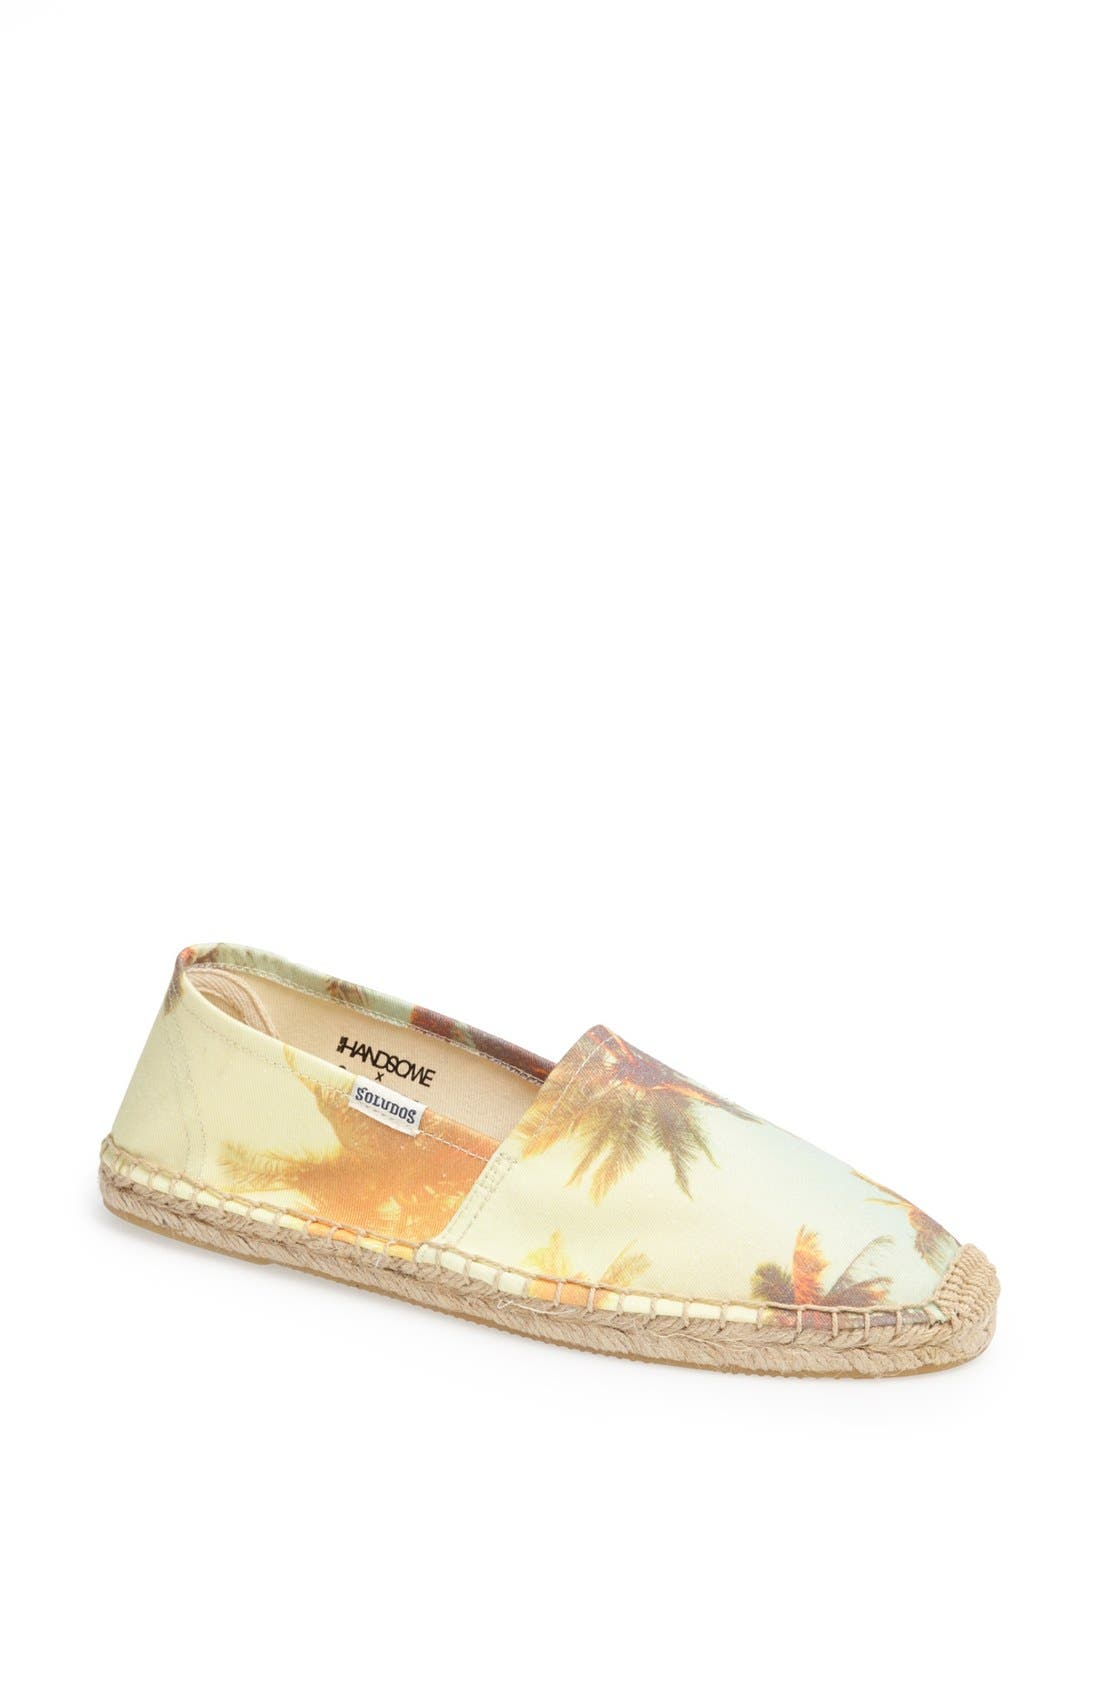 Main Image - We Are Handsome x Soludos Slip-On (Limited Edition) (Women)